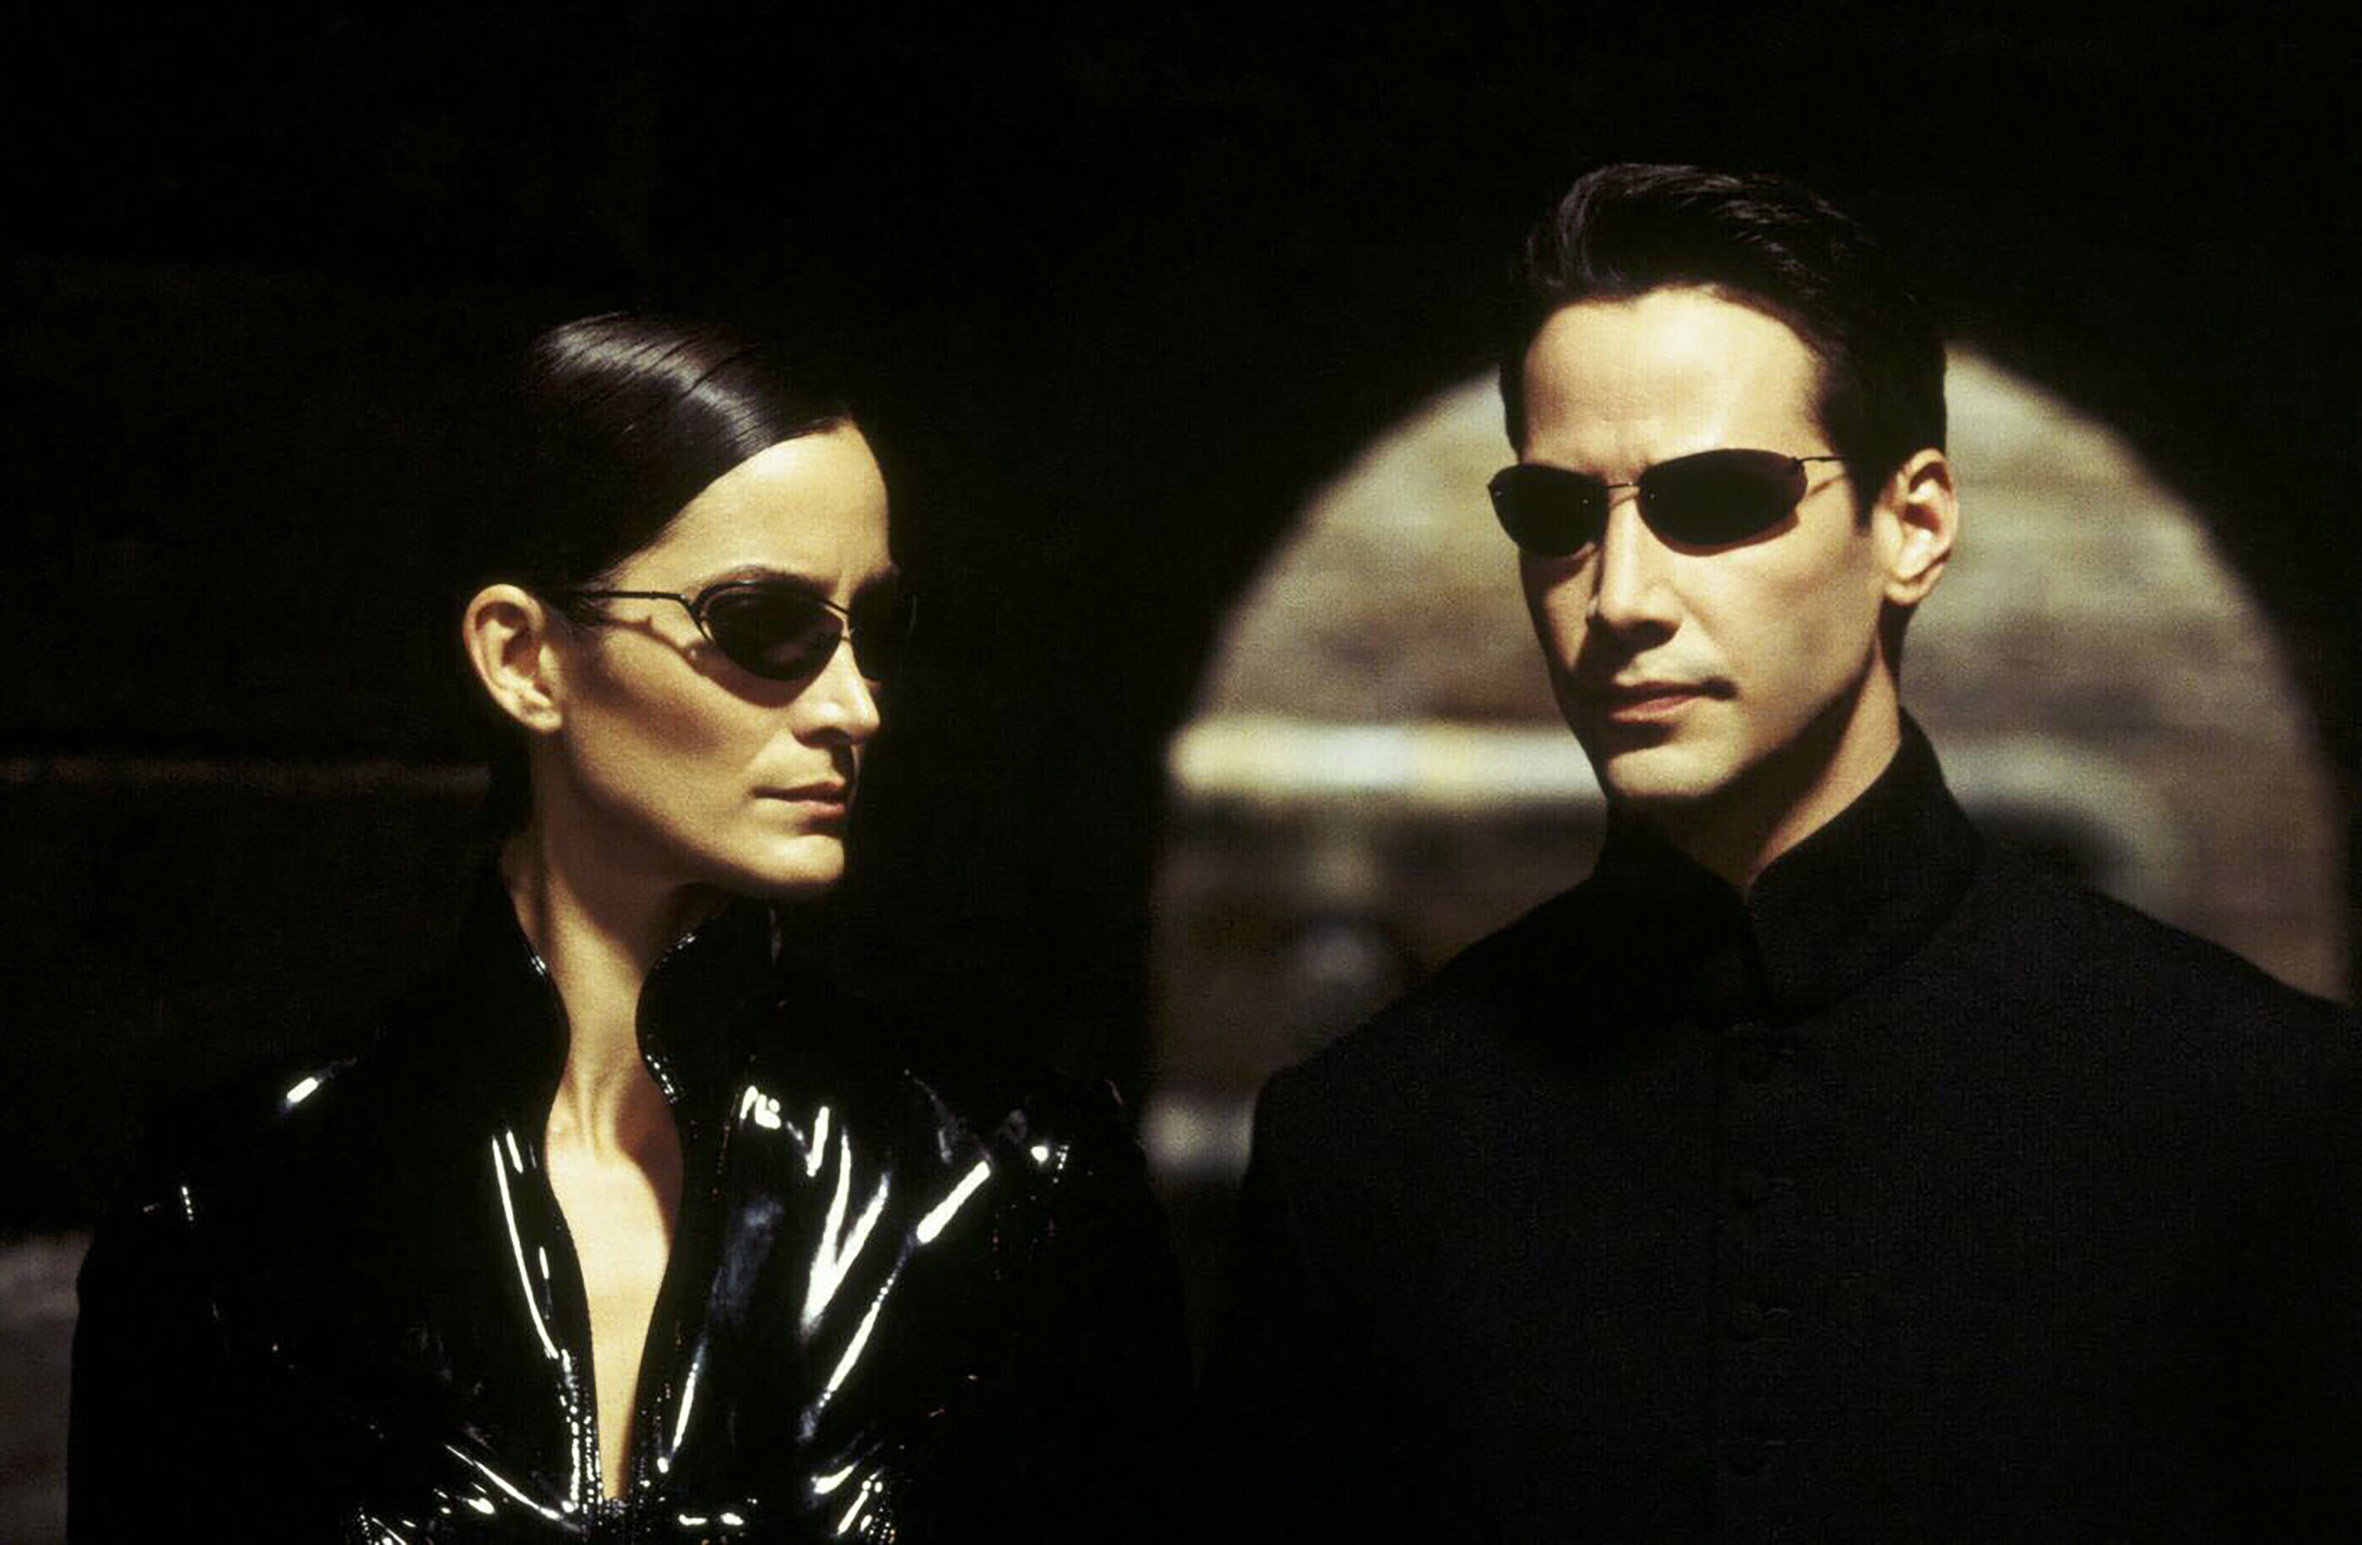 Trinity (Carrie-Anne Moss), Neo (Keanu Reeves) *** Local Caption *** 1999, Matrix, The, Matrix, Image: 144974164, License: Rights-managed, Restrictions: Nur redaktionelle Nutzung im Zusammenhang mit dem Film. Editorial usage only and only related to the movie. Im Falle anderer Verwendungen, kontaktieren Sie uns bitte. For other uses, please contact us., Model Release: no, Credit line: Profimedia, United Archives